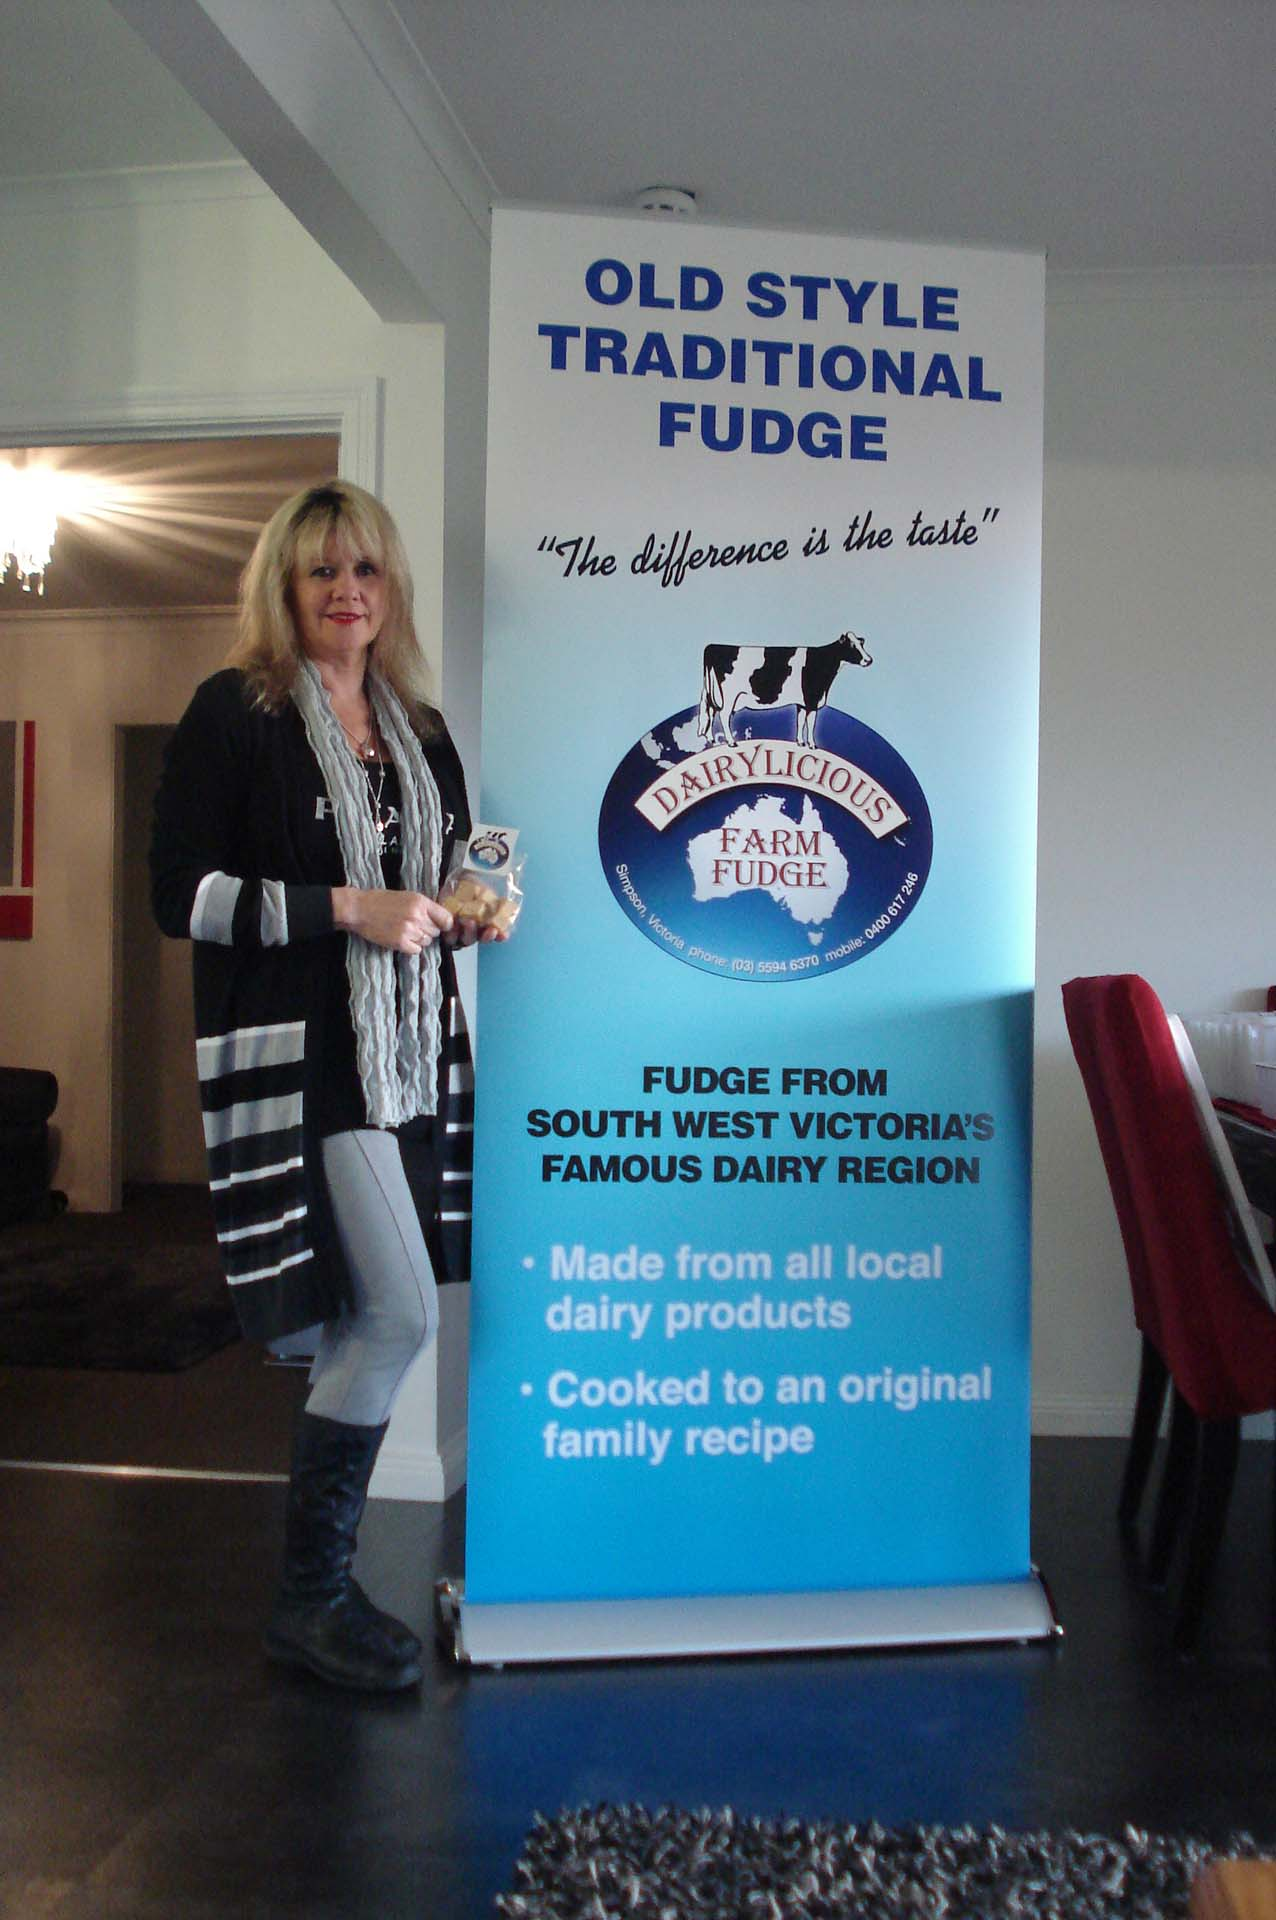 Dairylicious Farm Fudge - Lynda with Banner